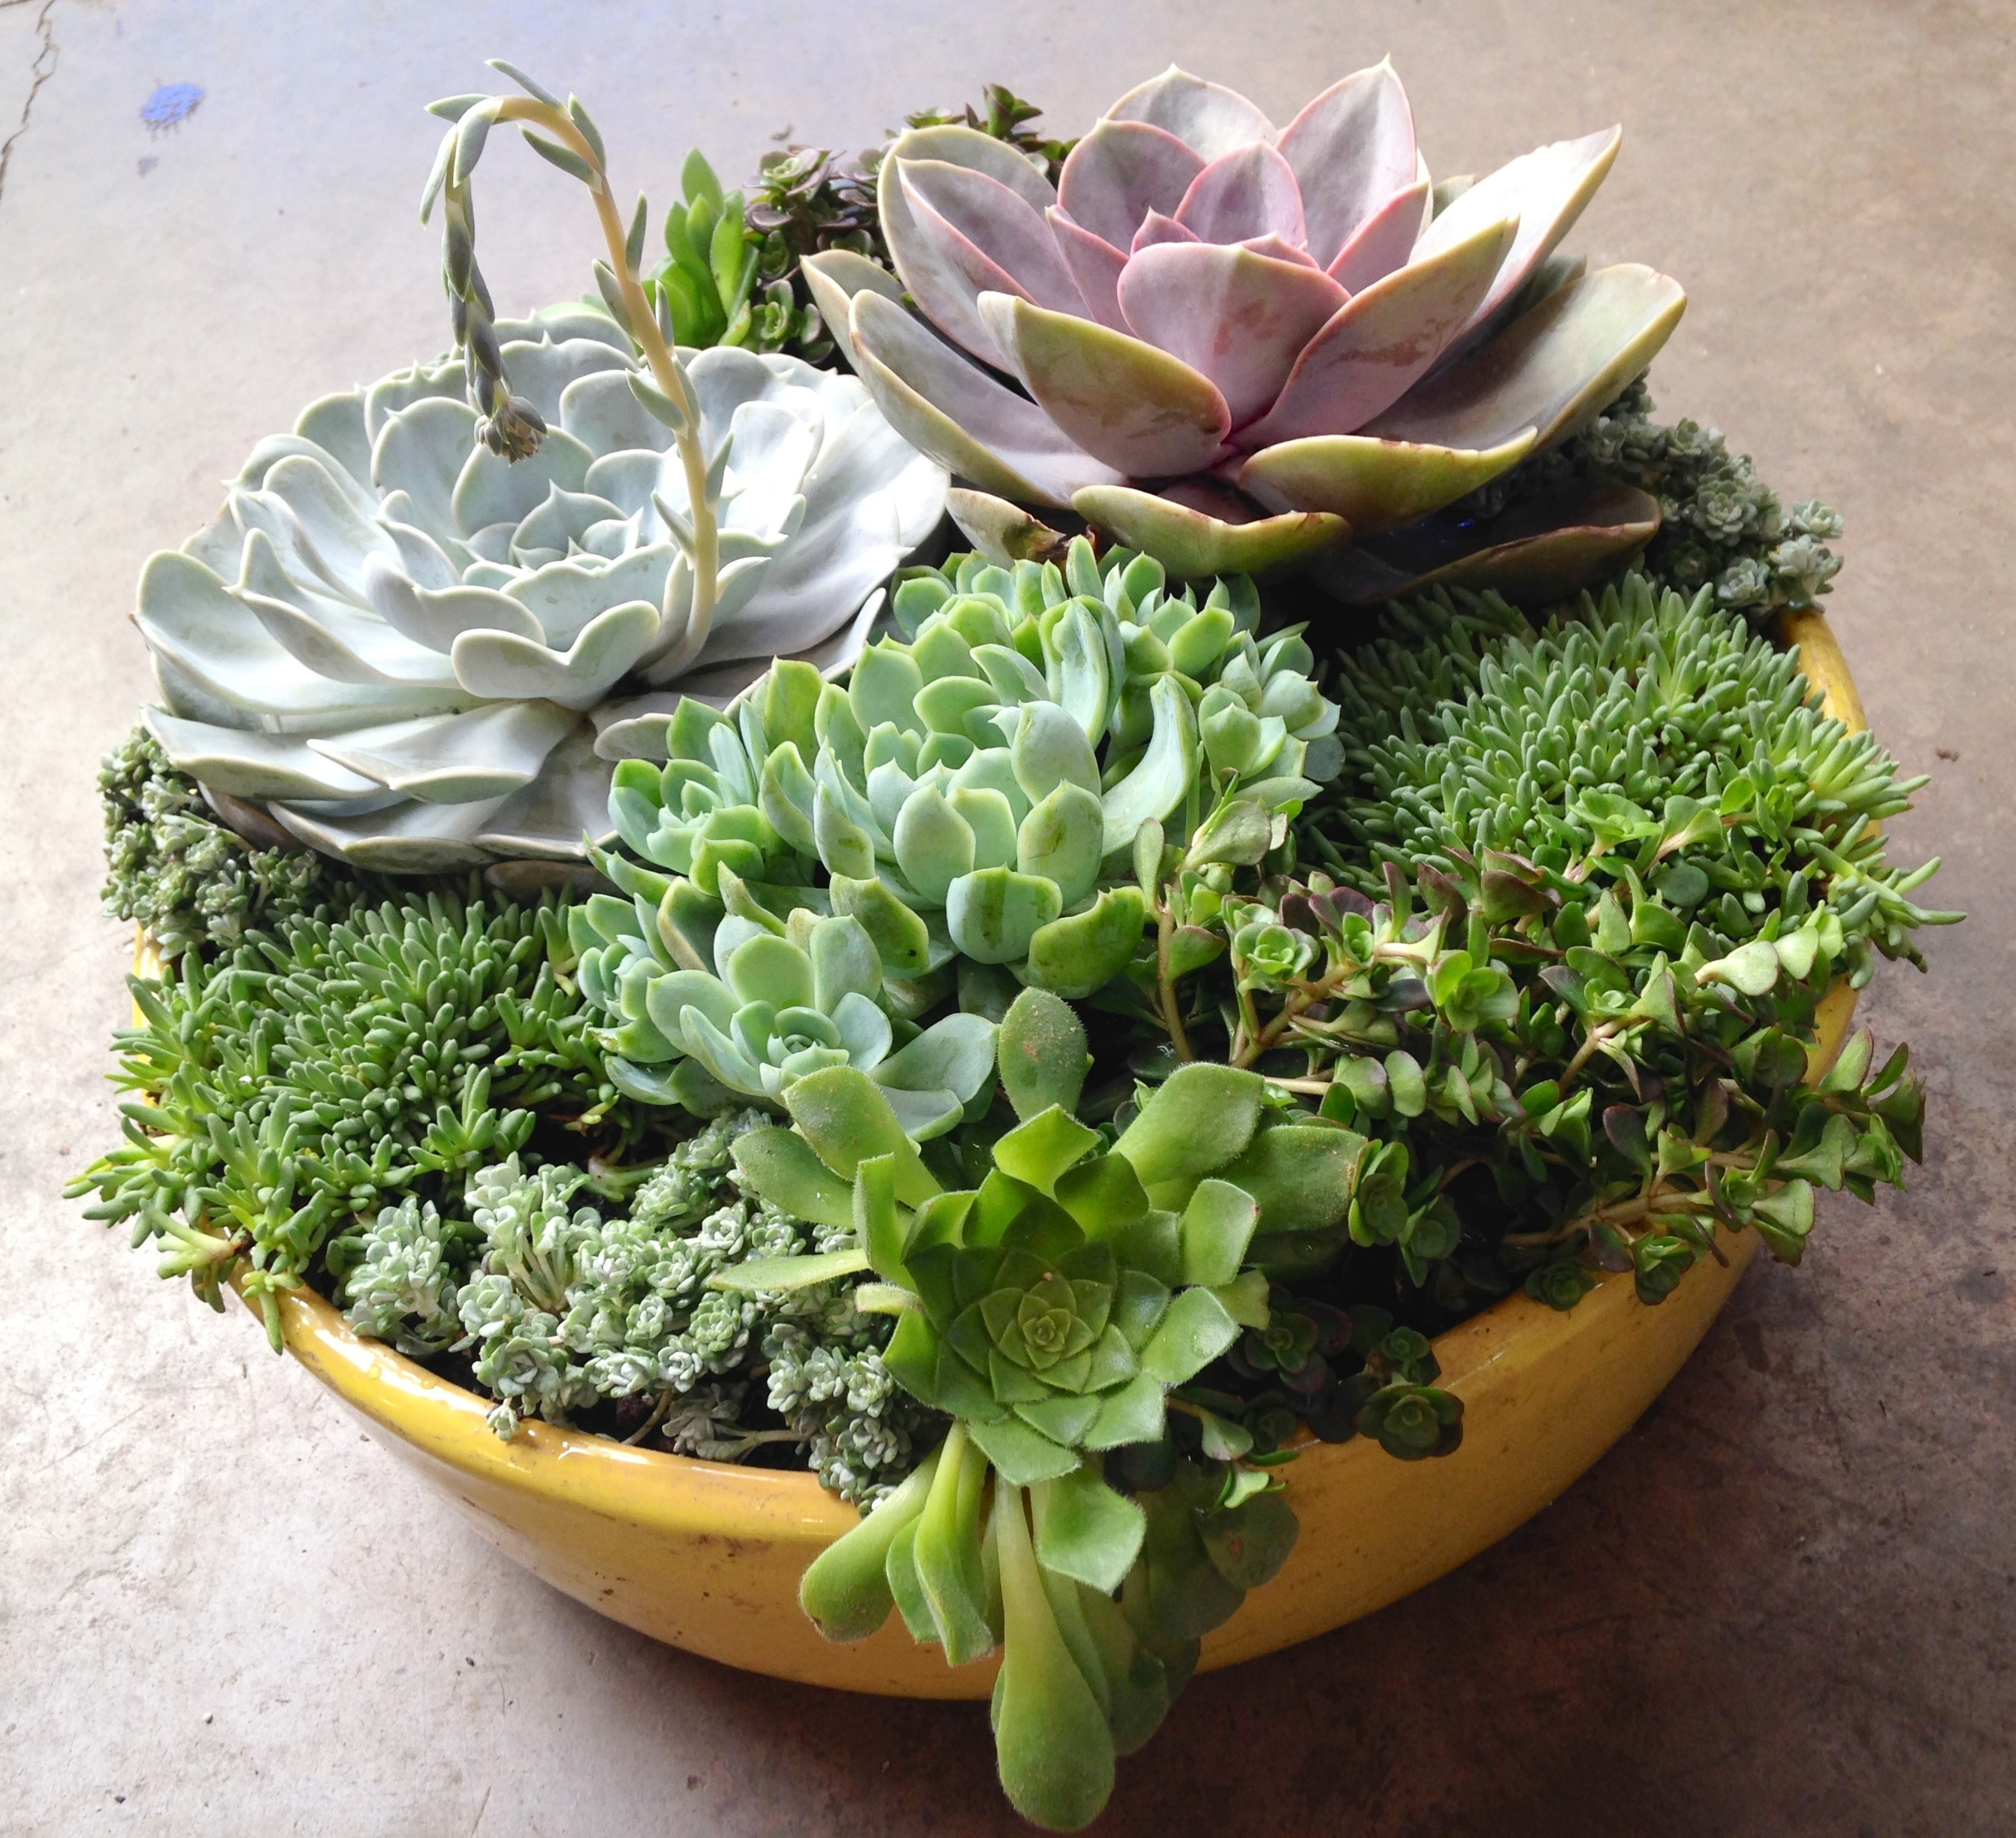 Design Succulent Planter Ideas diy succulent container designs 3 tips to create your own sloat planter